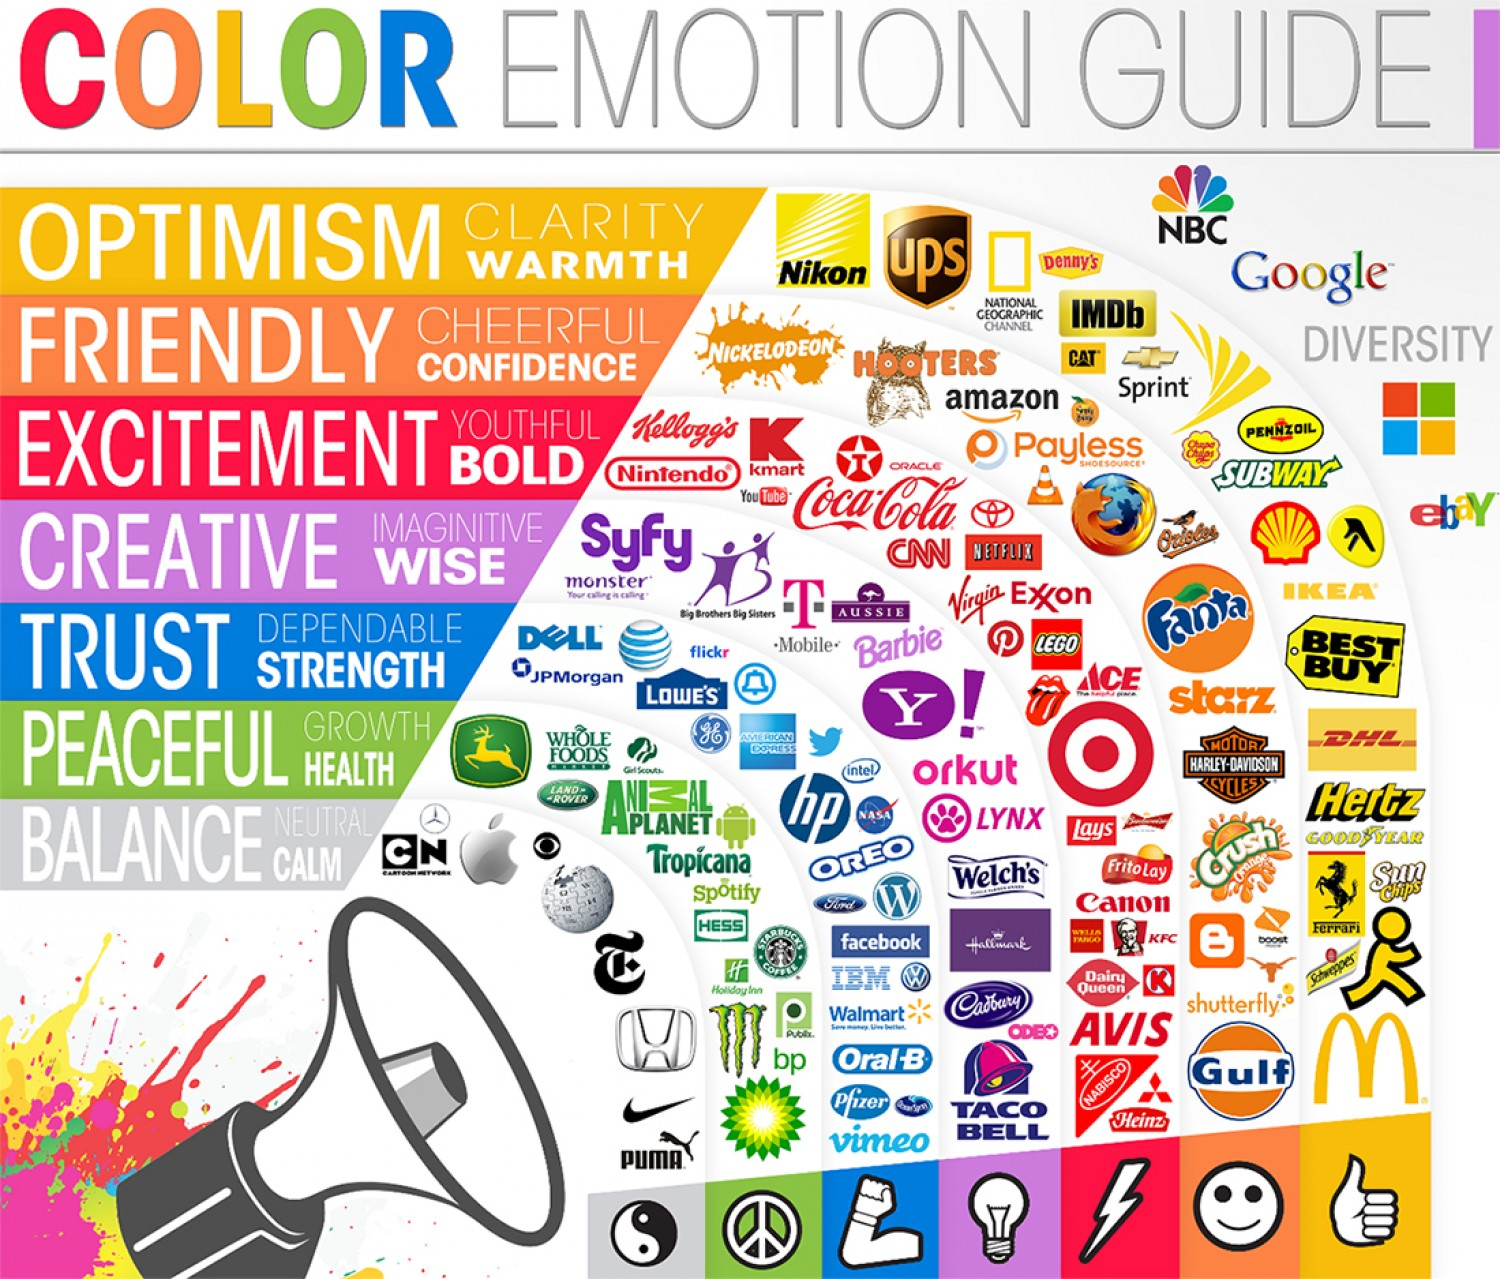 Colour Emotion Guide for Branding and Logos